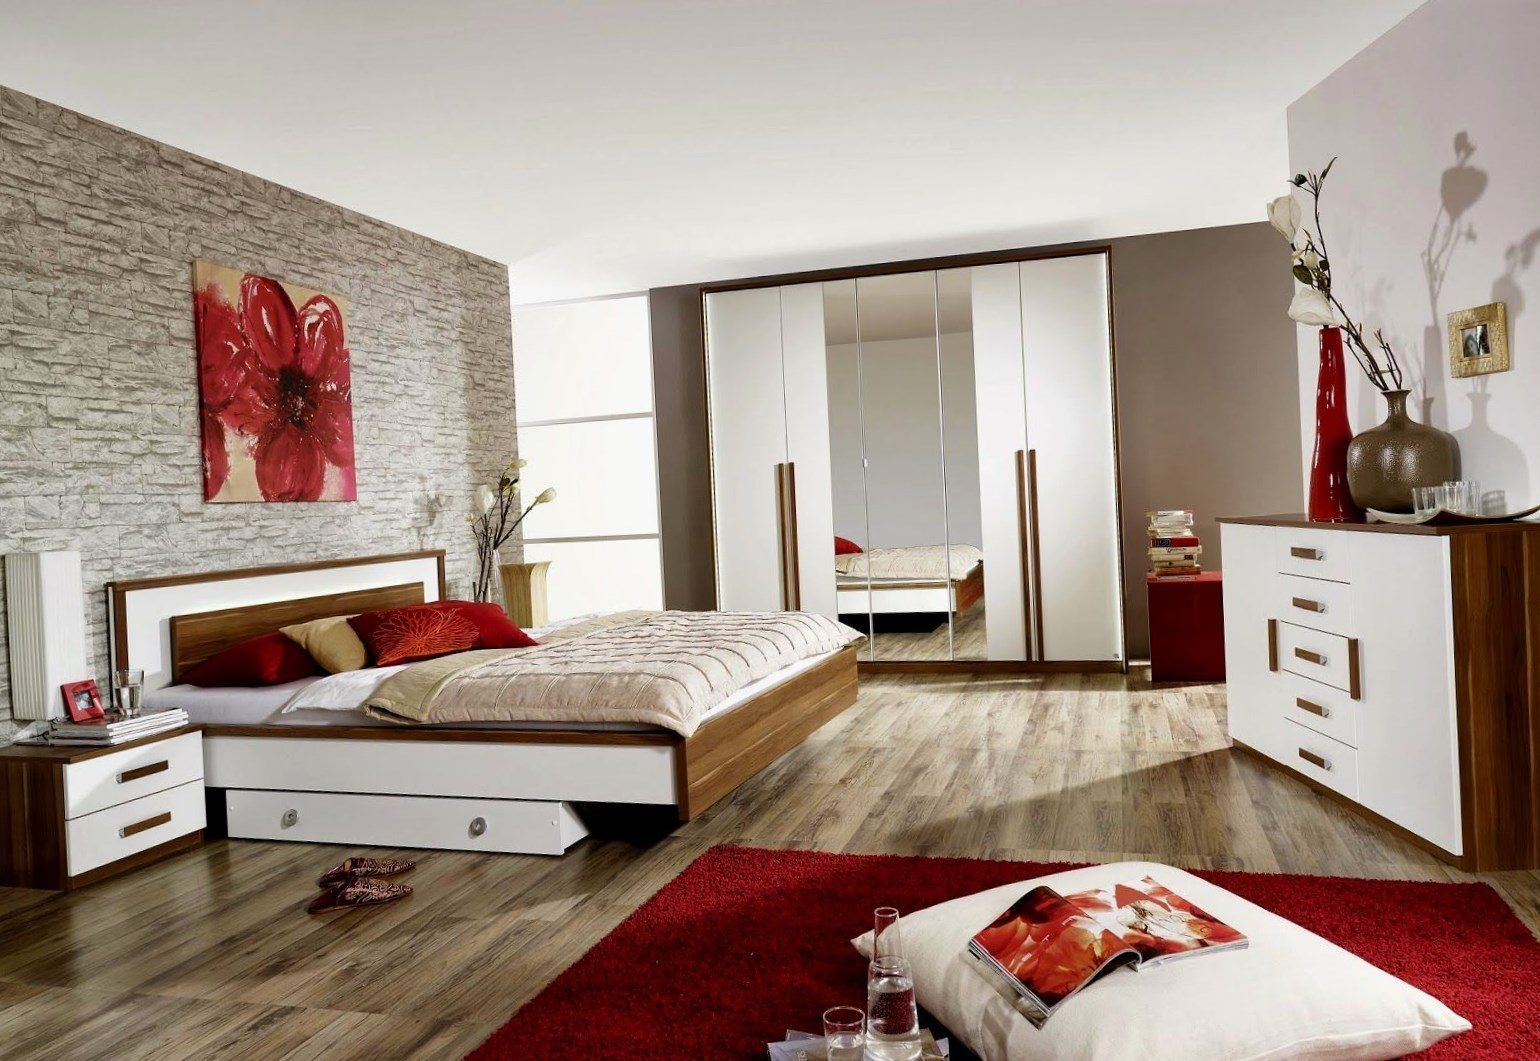 Superbe Populer The Simple Bedroom Ideas For Couples Home Designs Bedroom Ideas For  Couples